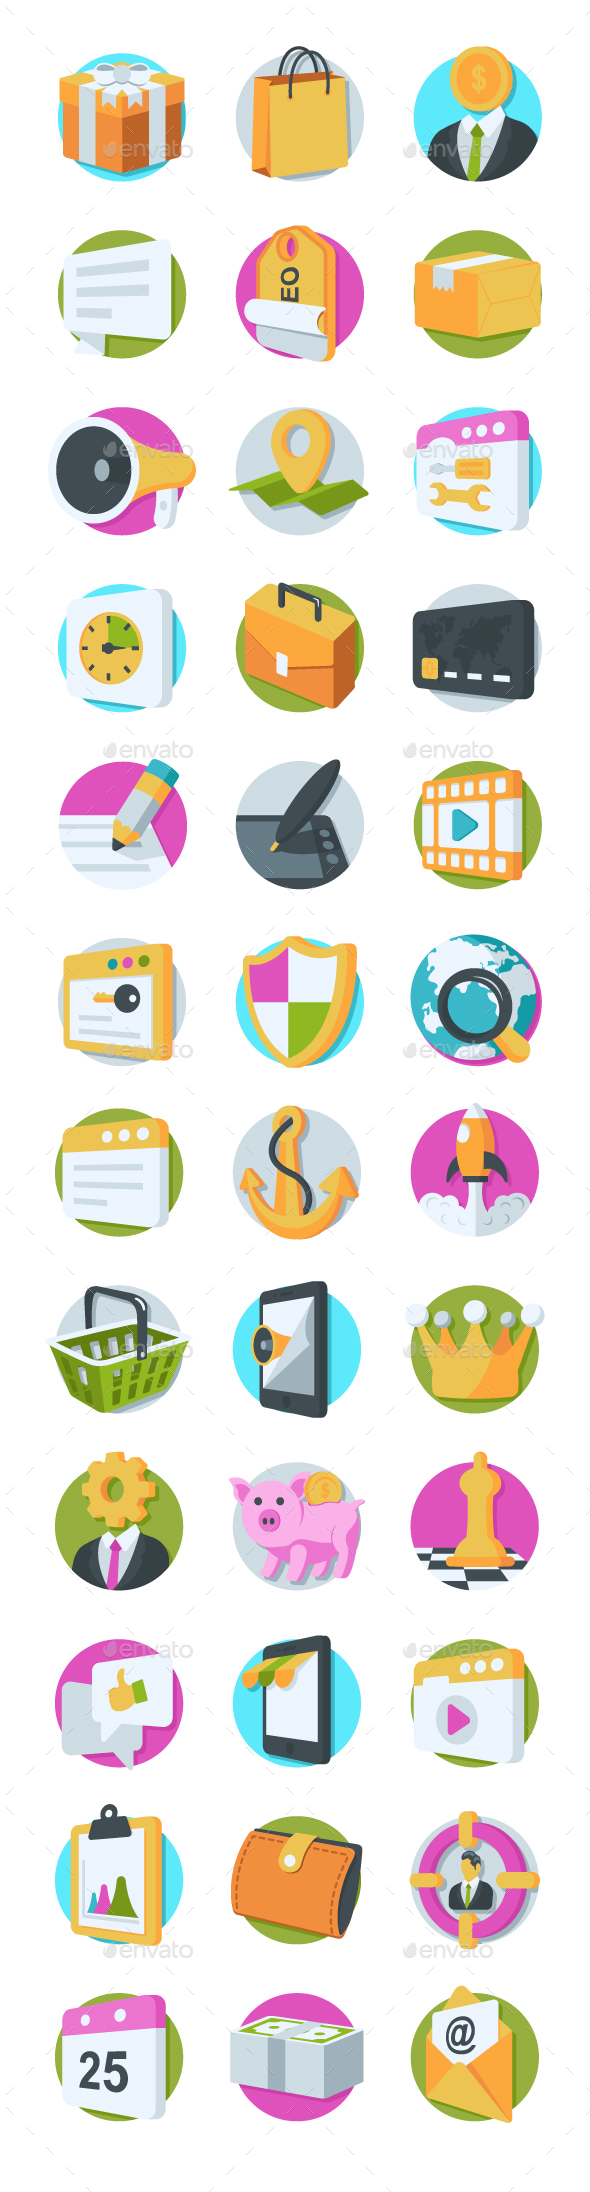 GraphicRiver 36 SEO and Marketing Icons 20750155